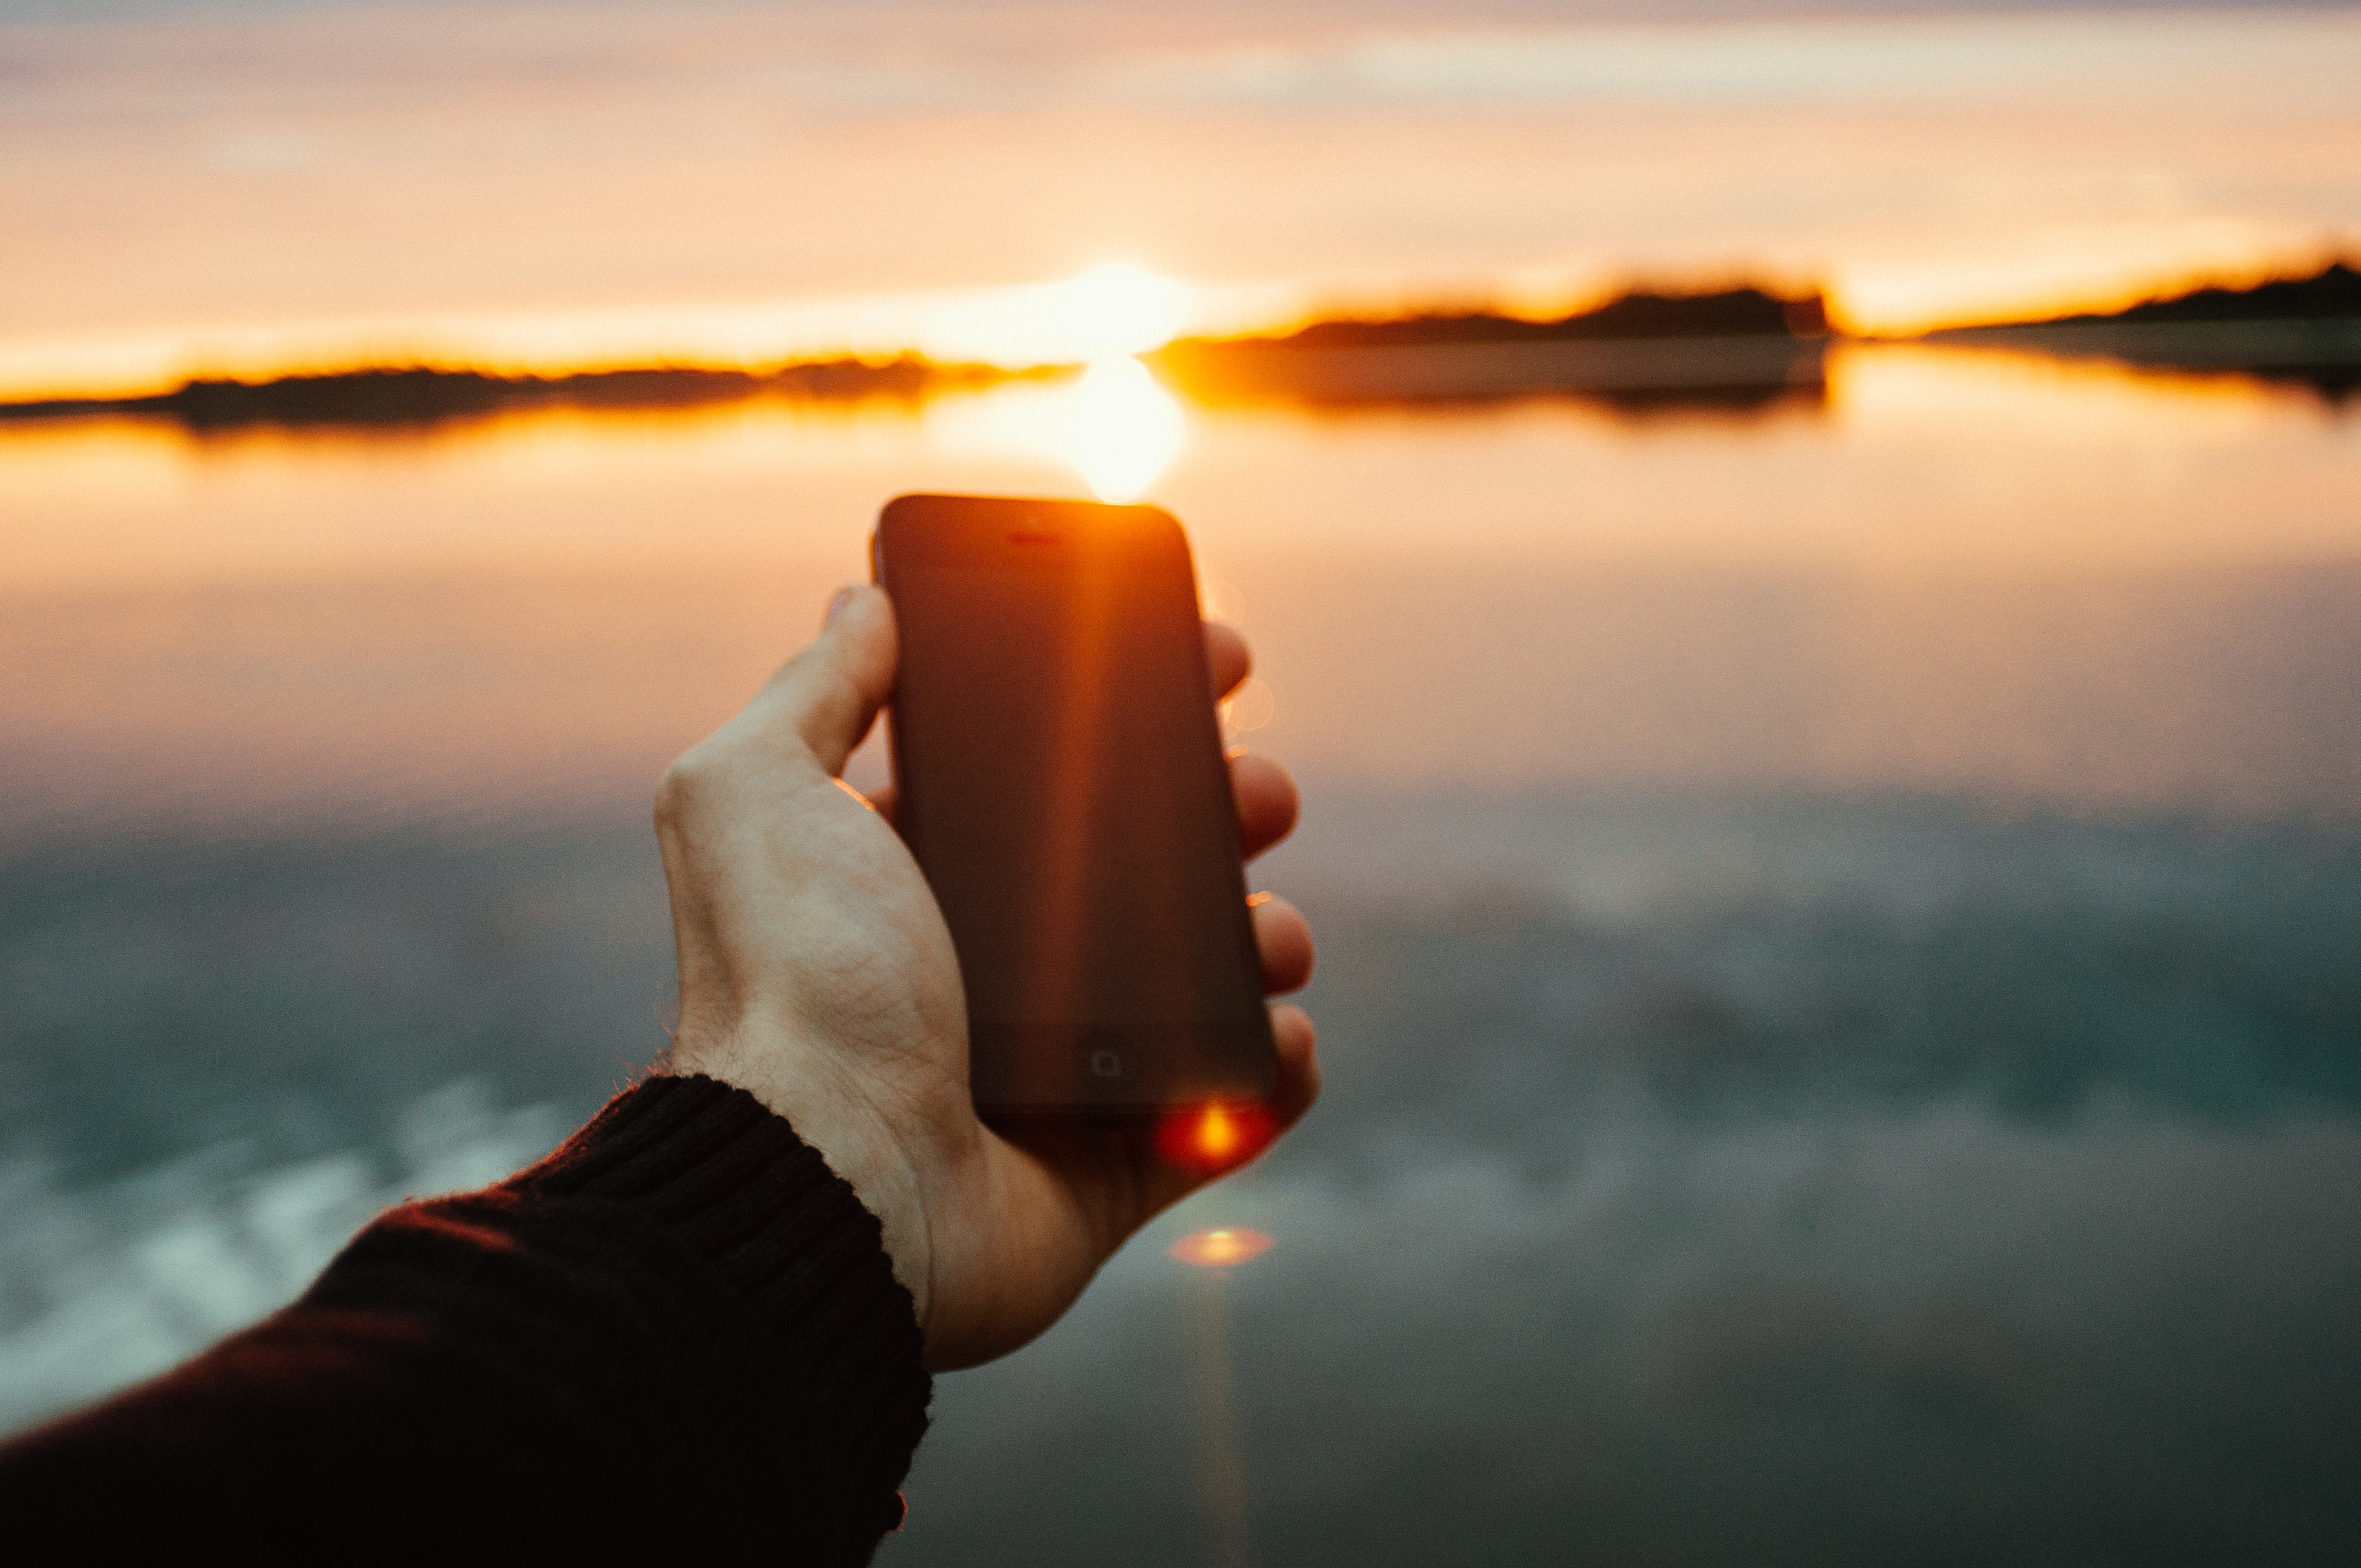 A person's hand holding a smartphone over a body of water at sunset